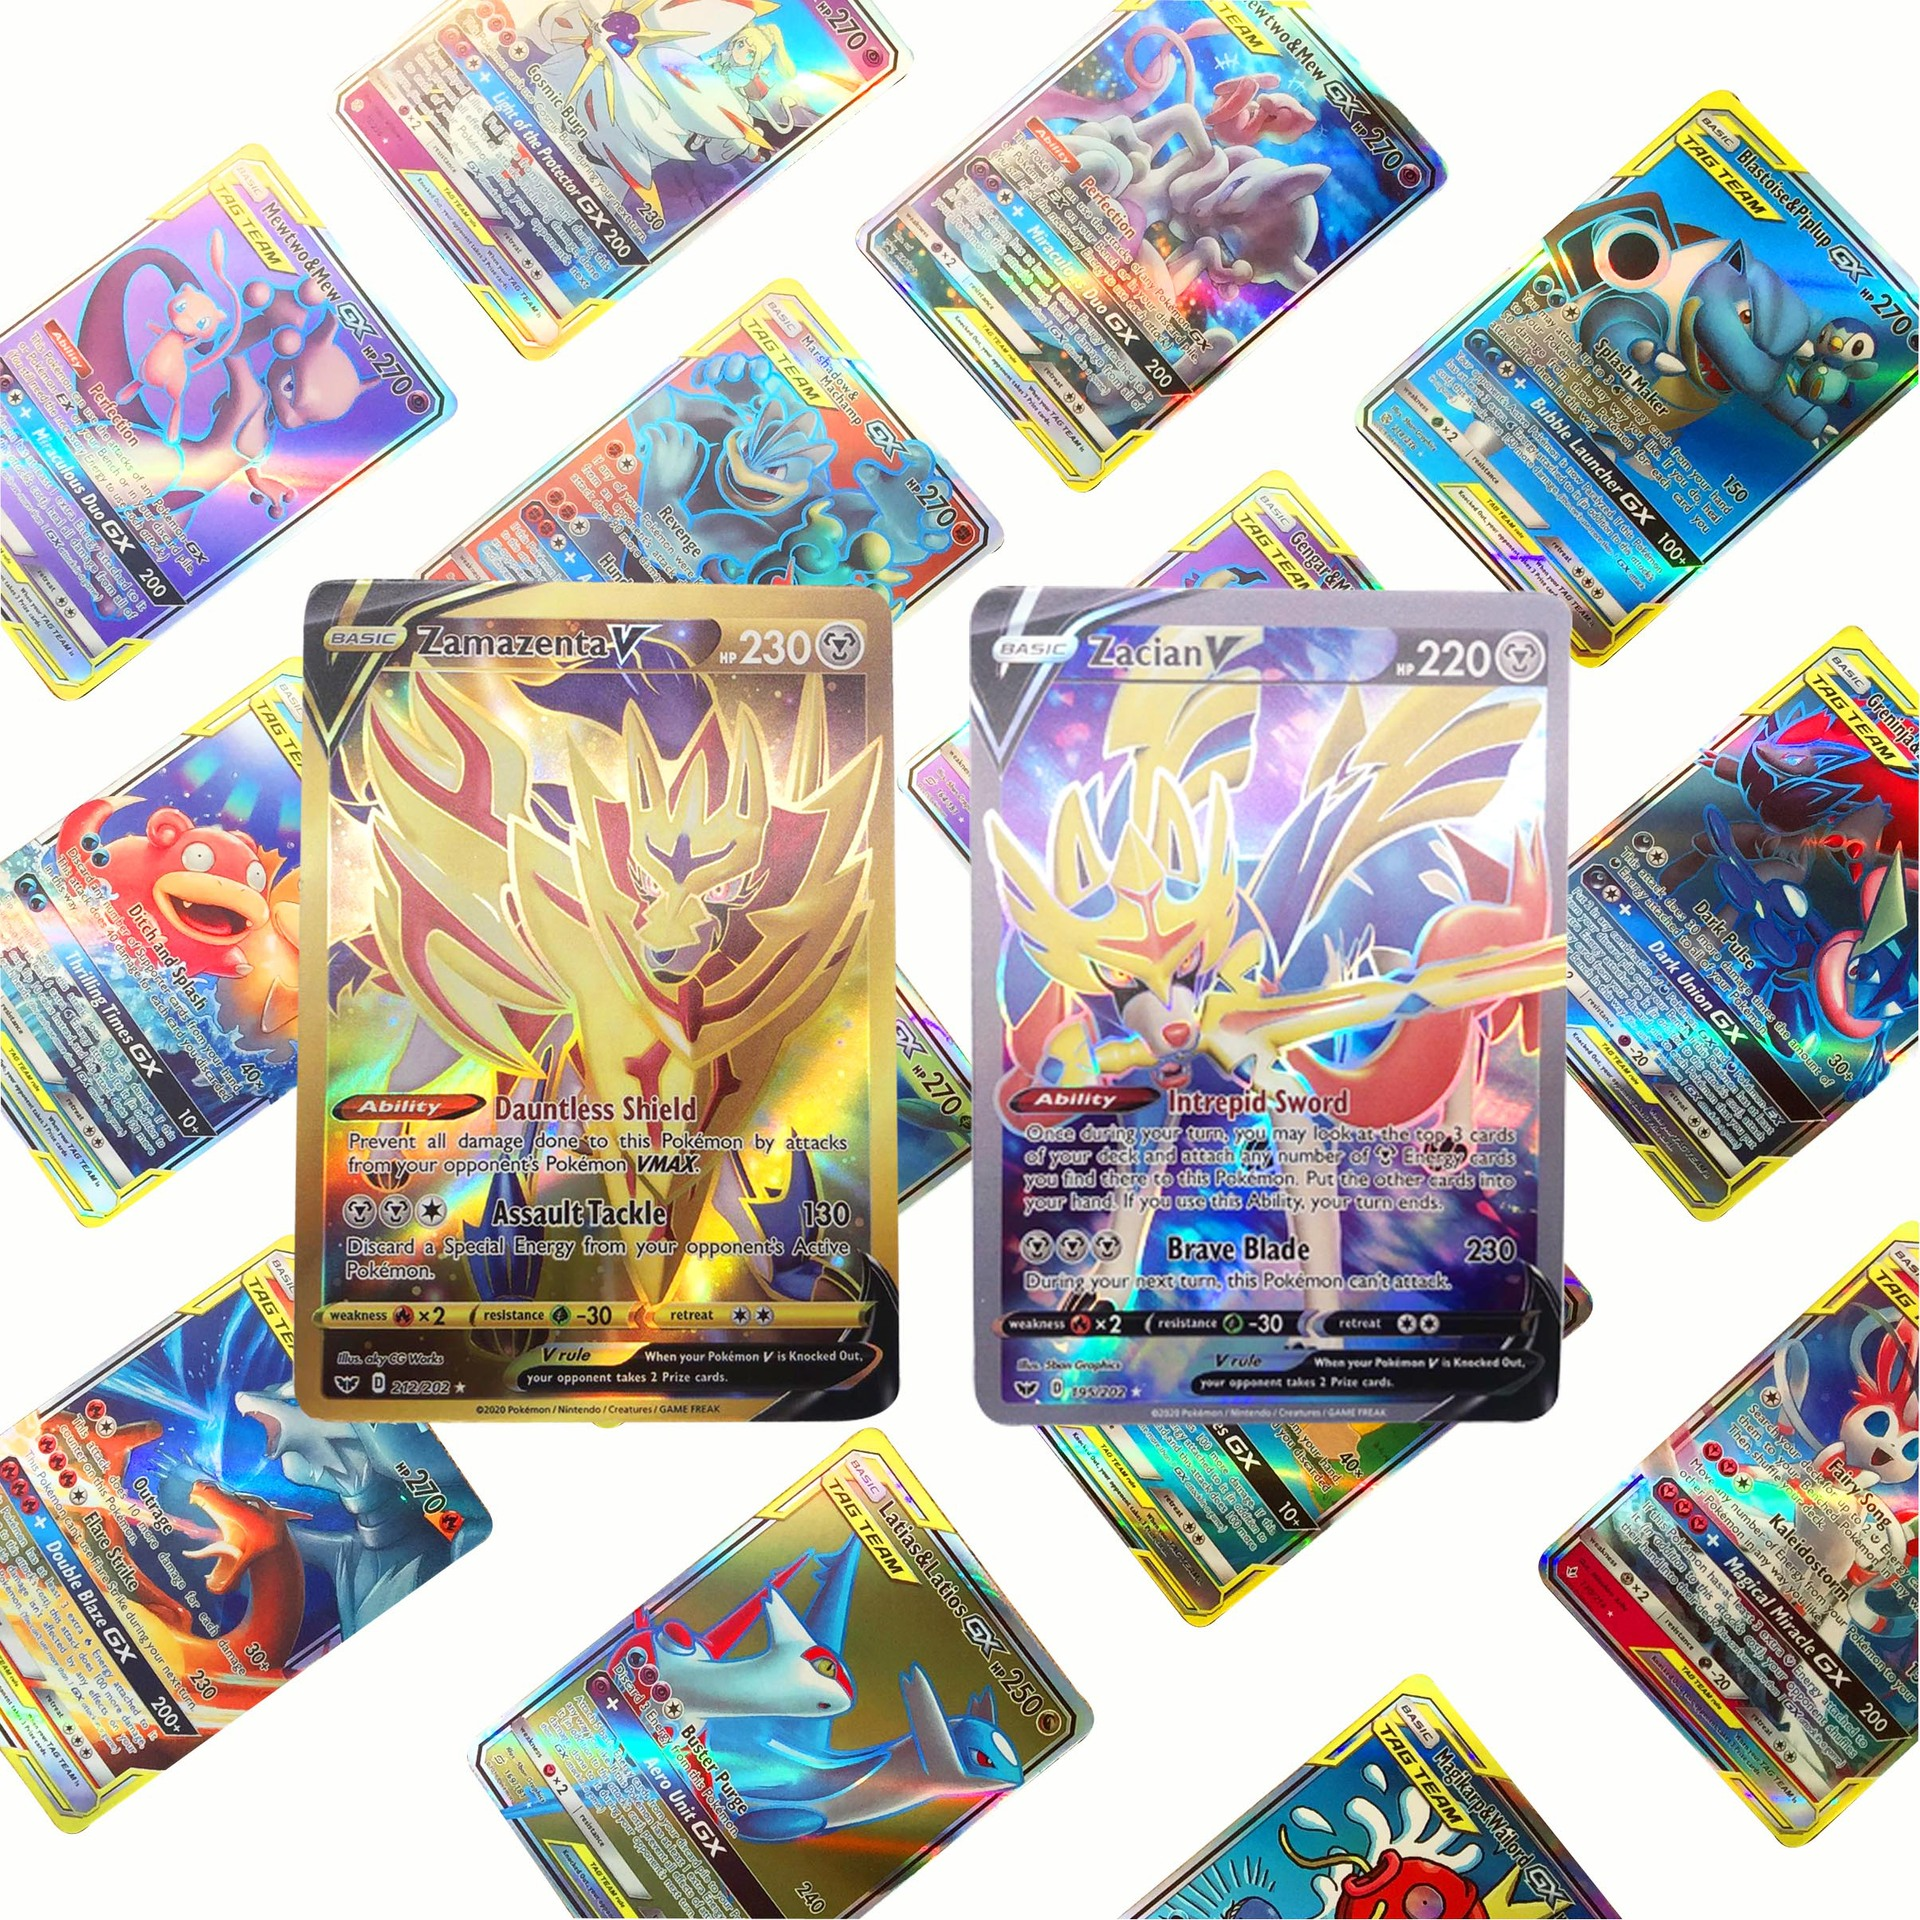 2020 New Pokemon Battle Game Card Vmax Card CARDS Card GX MEGA EX English Version Kind Kids Toy Gift